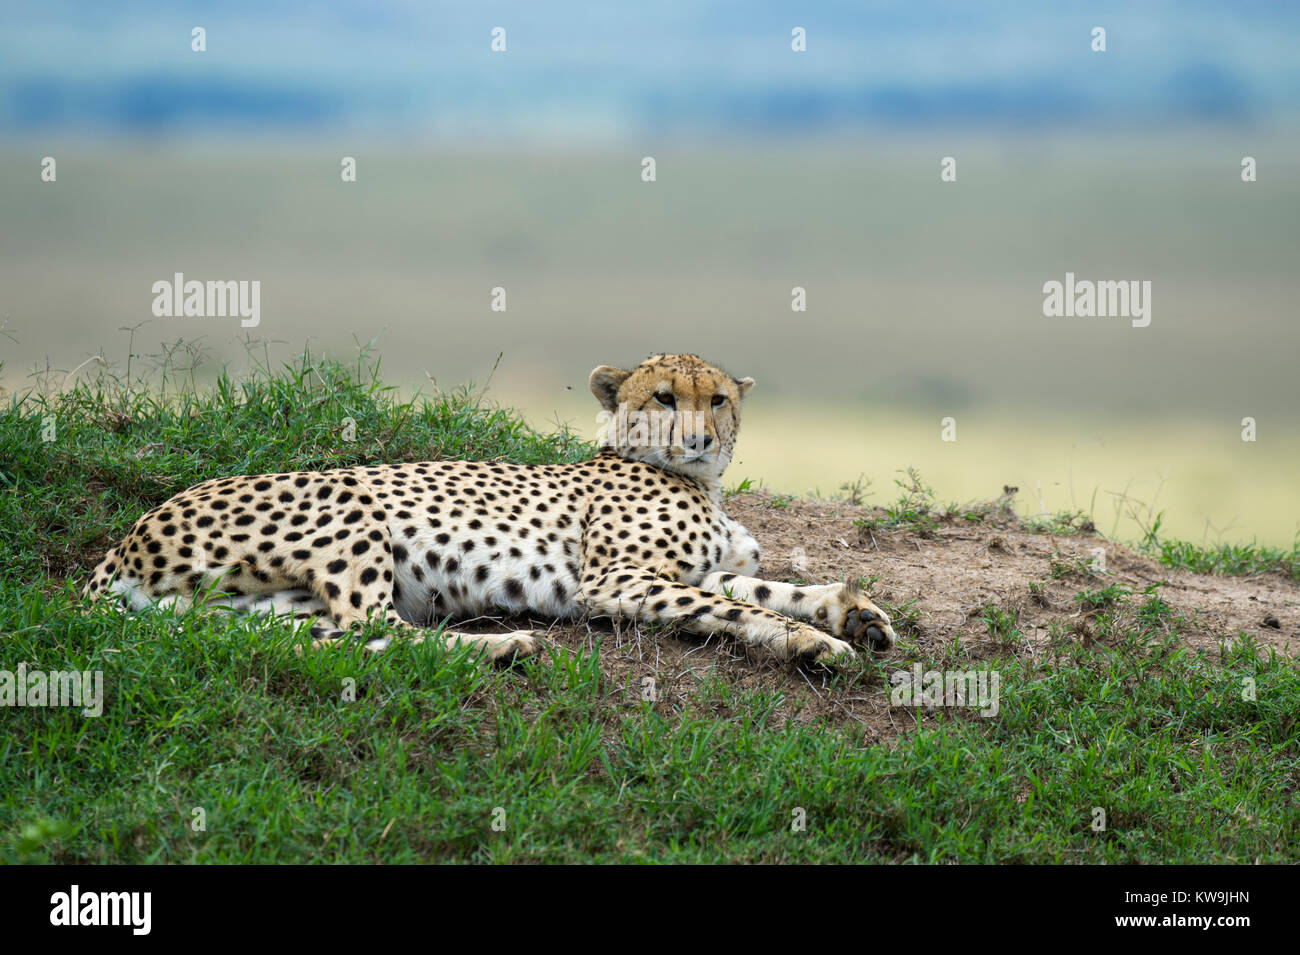 Cheetah resting on the African Savannah Stock Photo